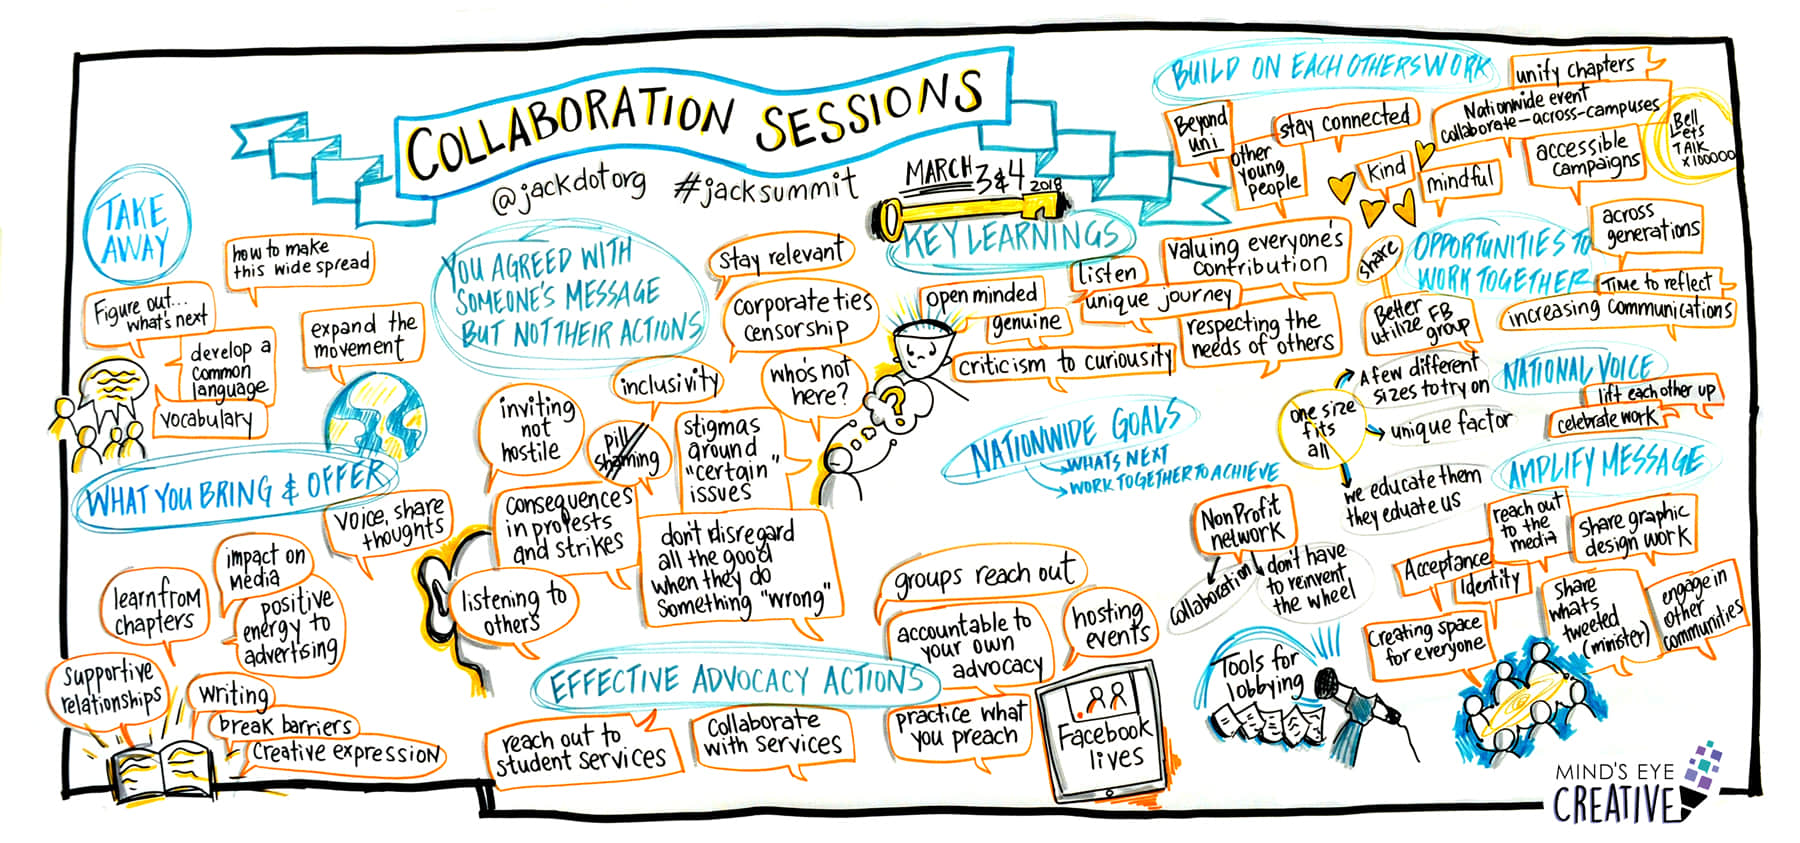 Graphic recording of activists collaborating at Jack summit event